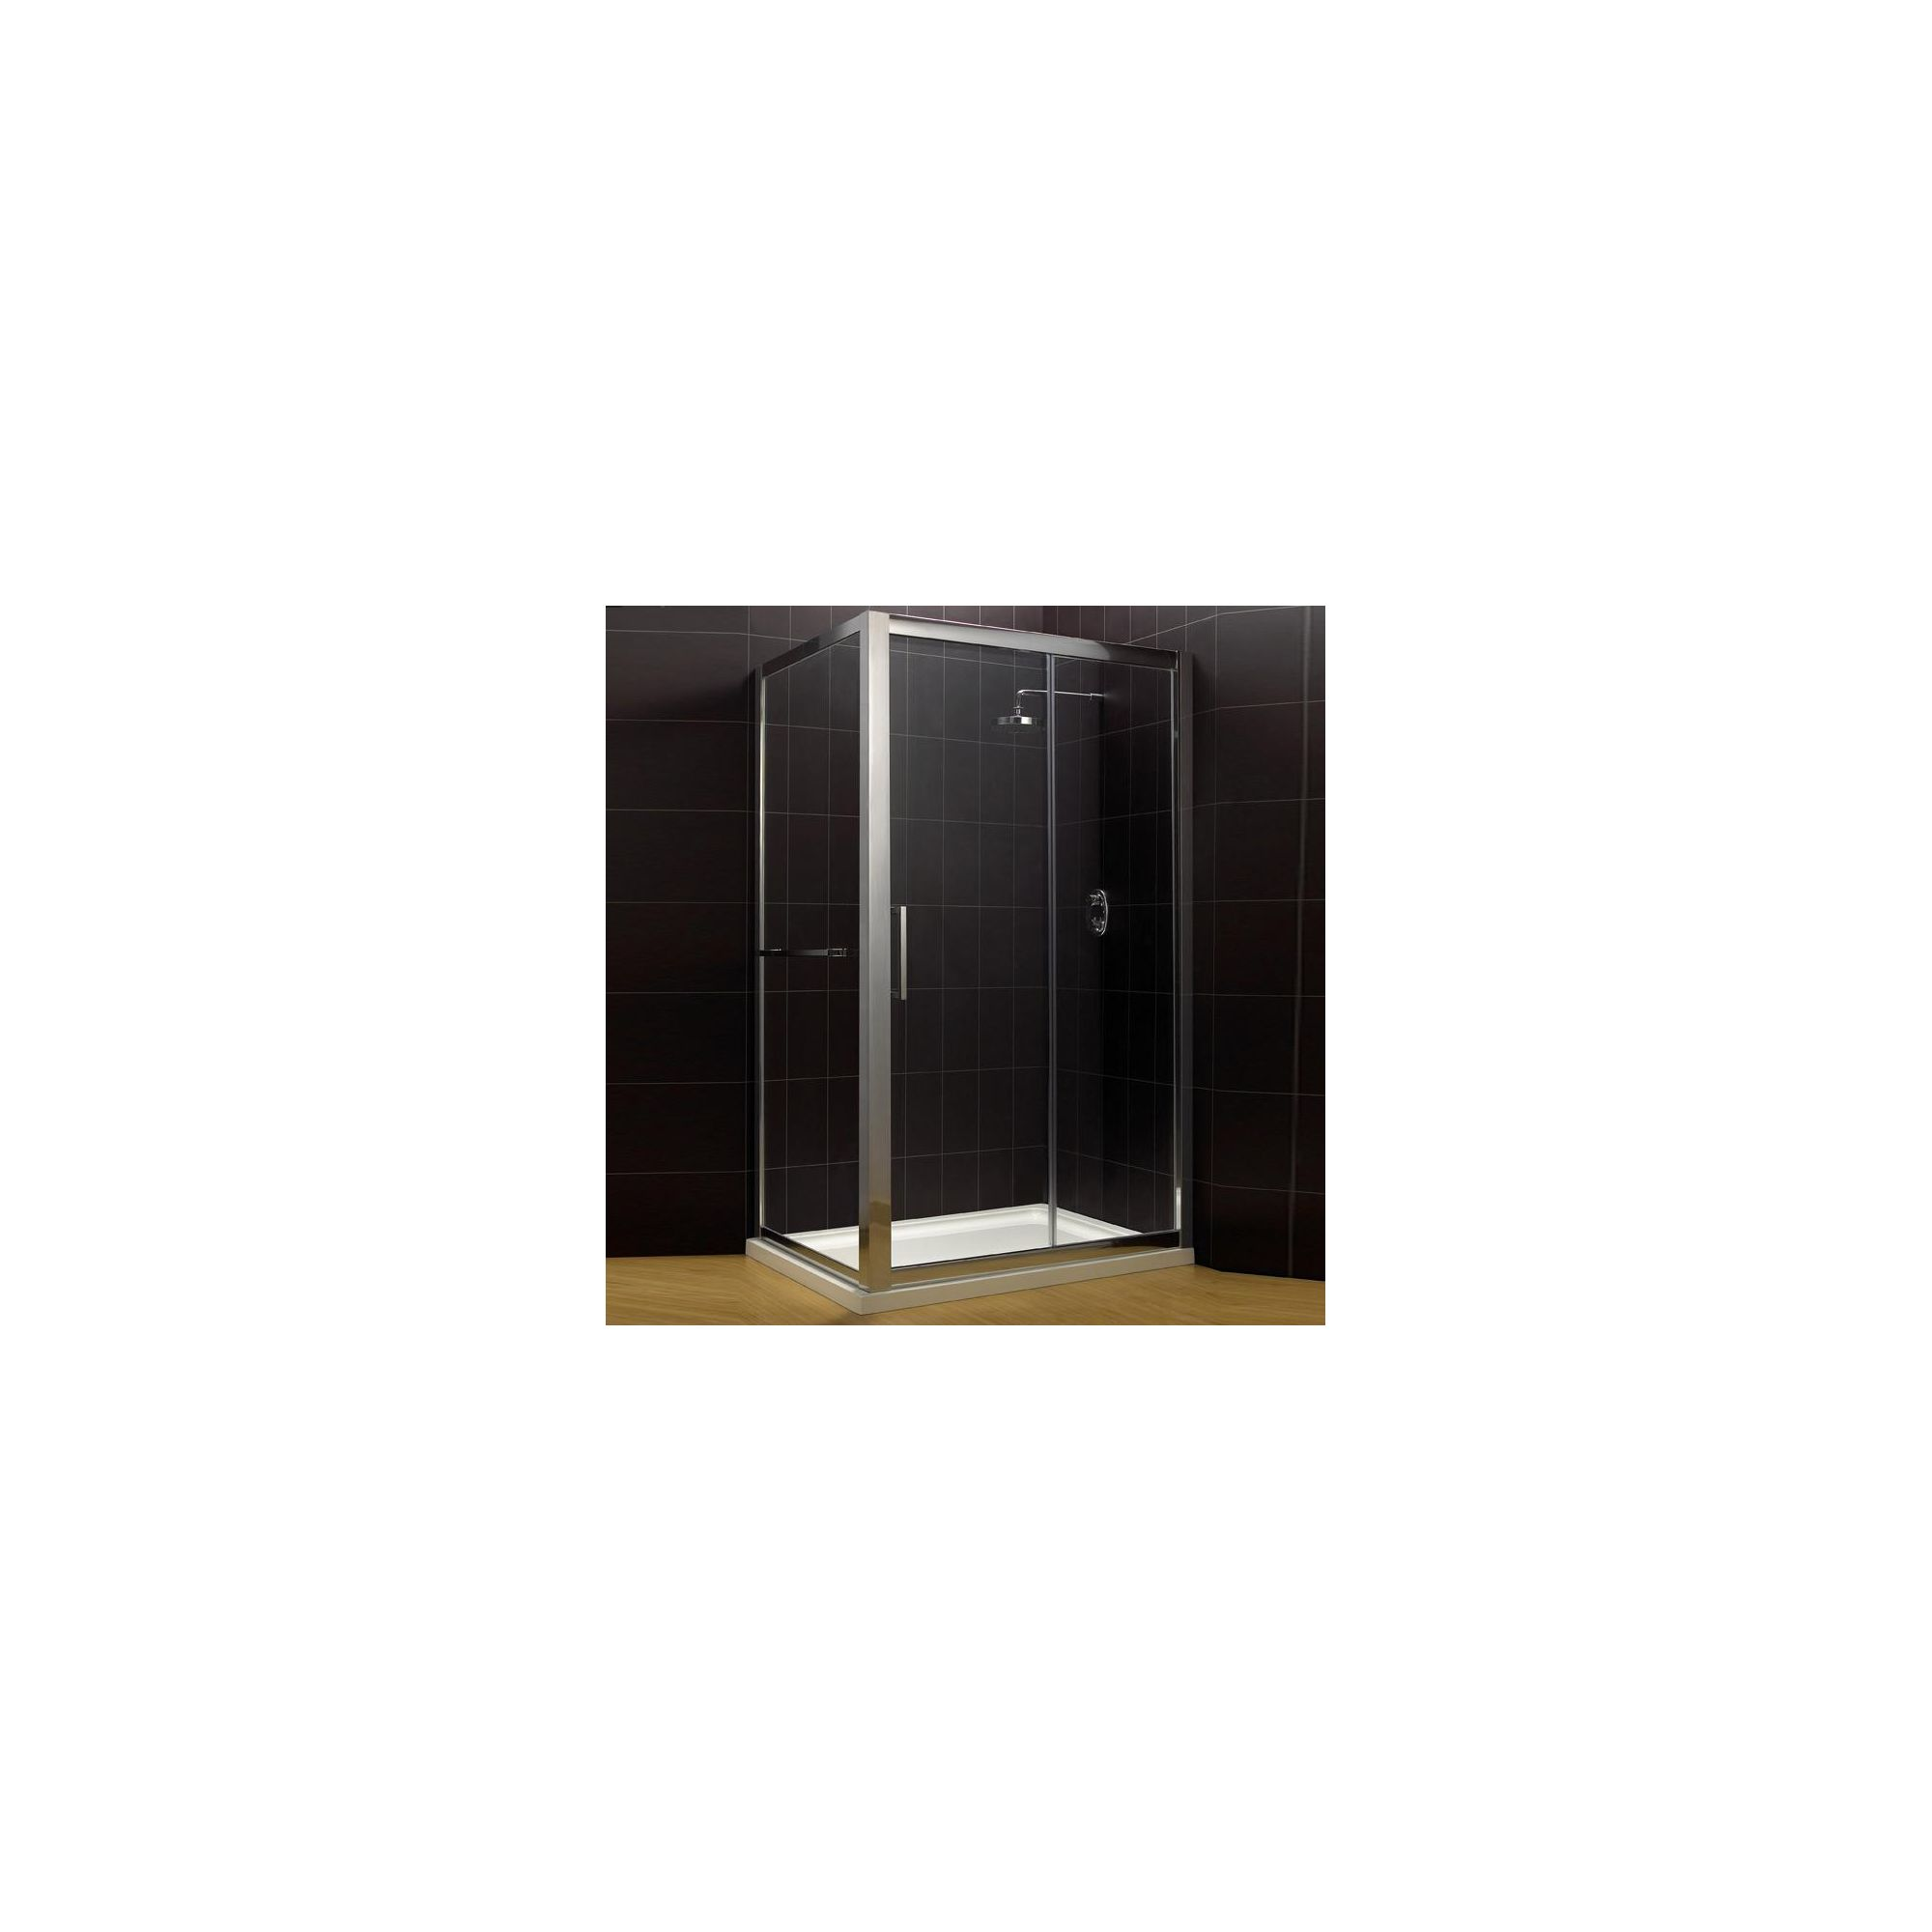 Duchy Supreme Silver Sliding Door Shower Enclosure with Towel Rail, 1700mm x 760mm, Standard Tray, 8mm Glass at Tesco Direct